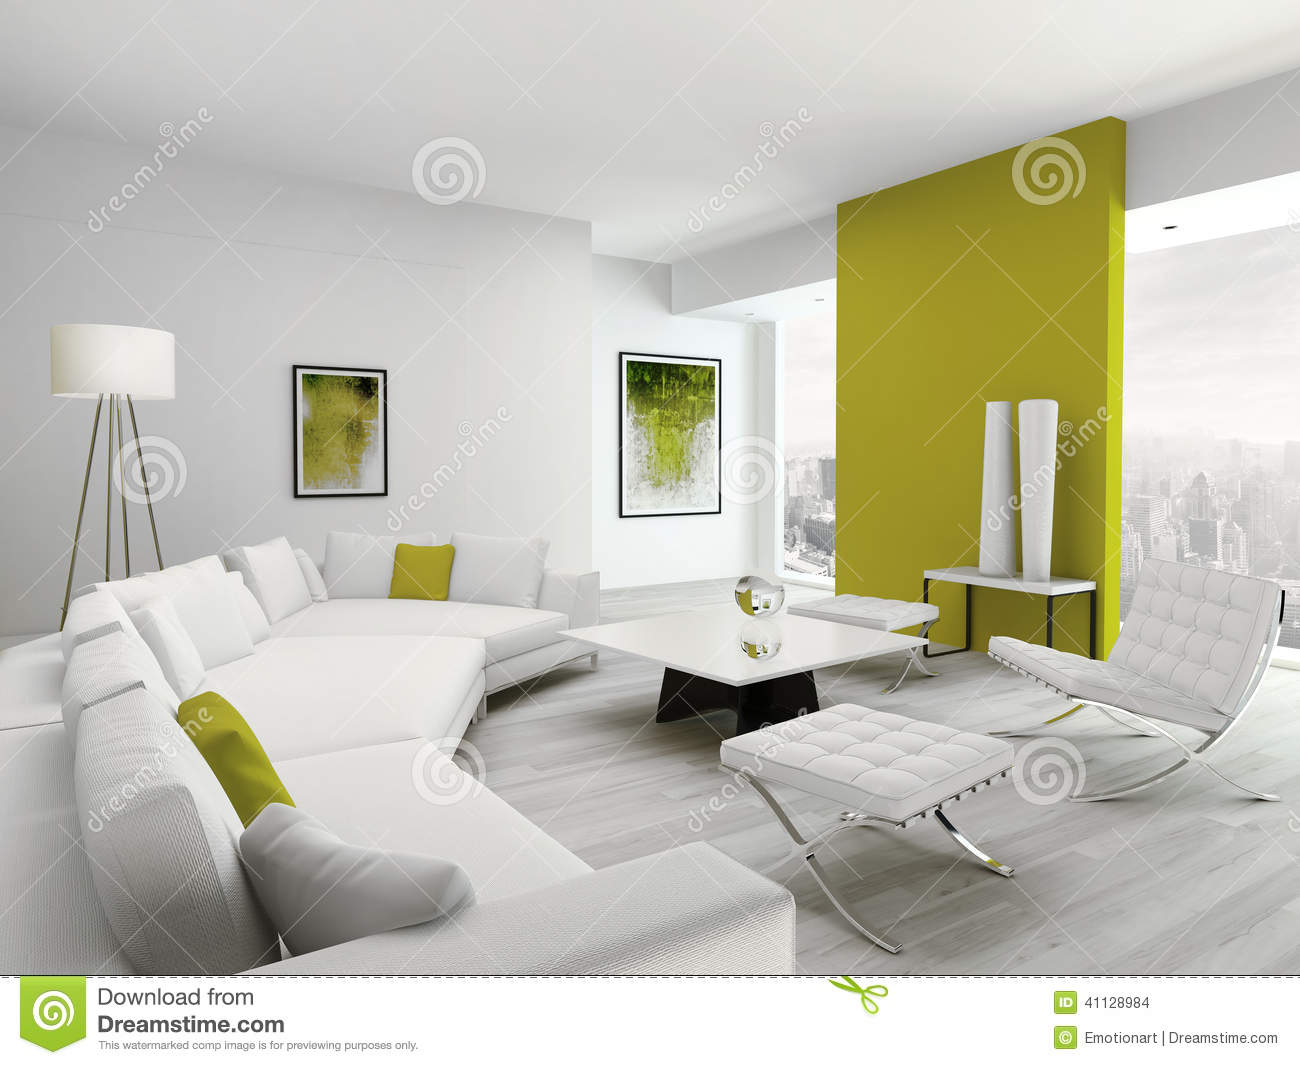 salon vert et par blanc color moderne int rieur illustration stock illustration du blanc. Black Bedroom Furniture Sets. Home Design Ideas